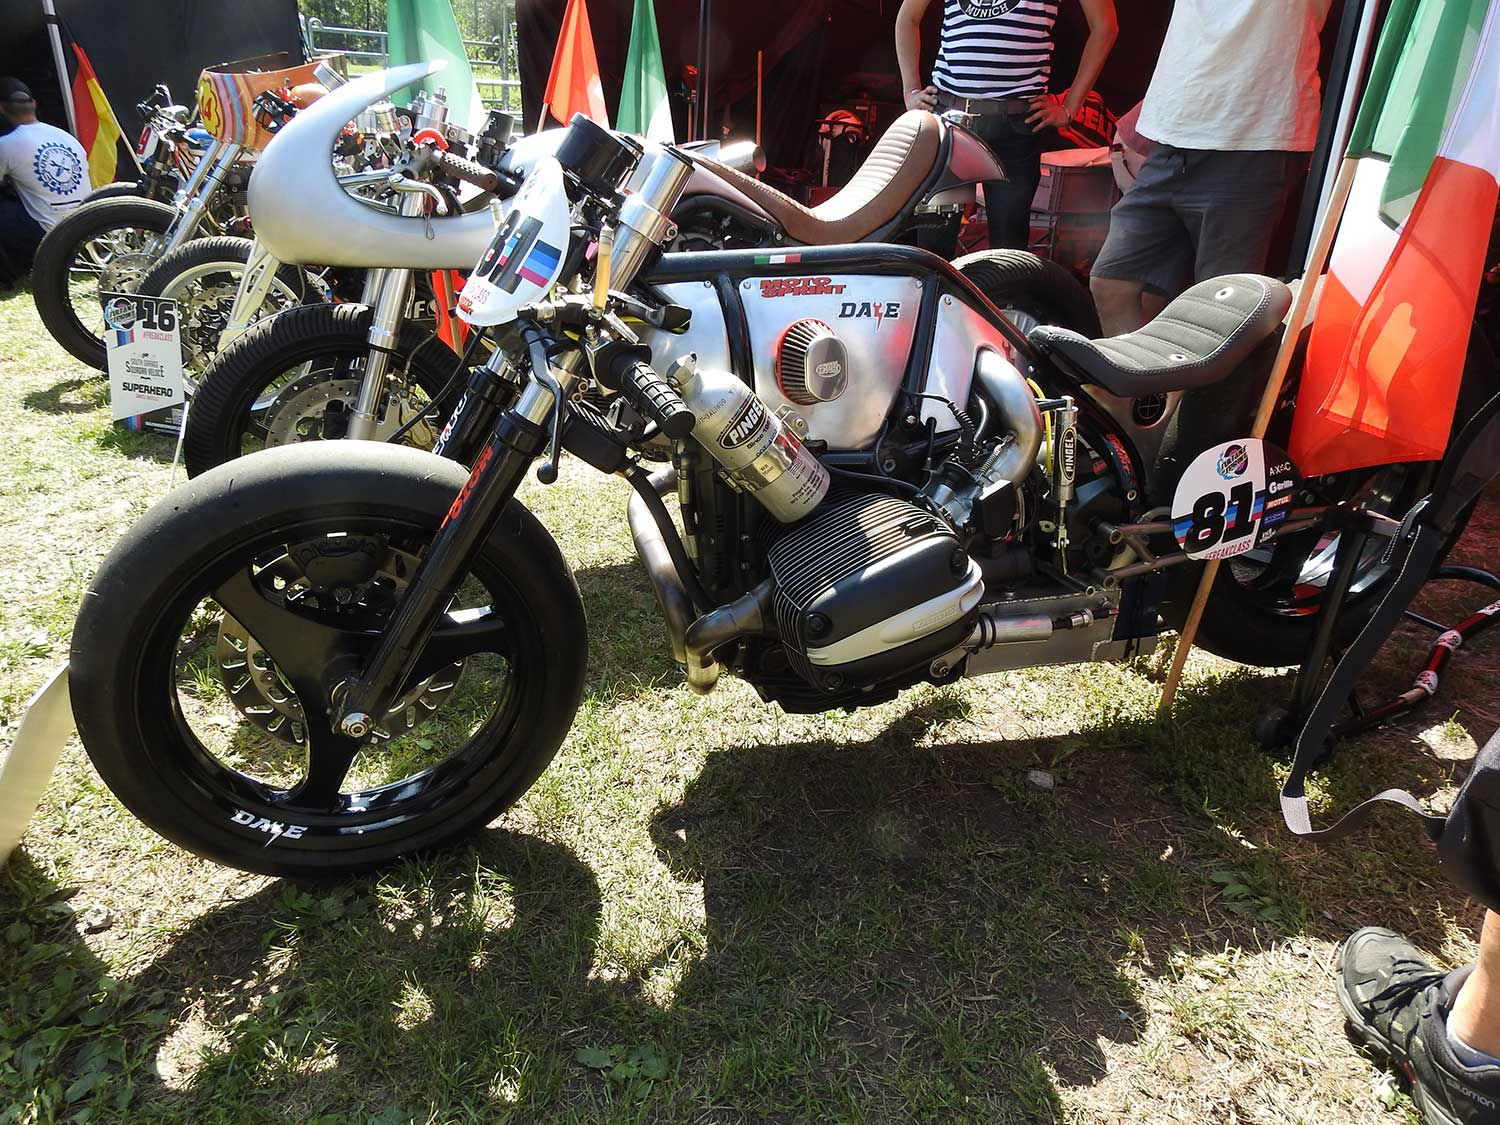 Things you can do to an old oilhead BMW engine. This Sultans of Sprint racer caught my attention in the competitors paddock.